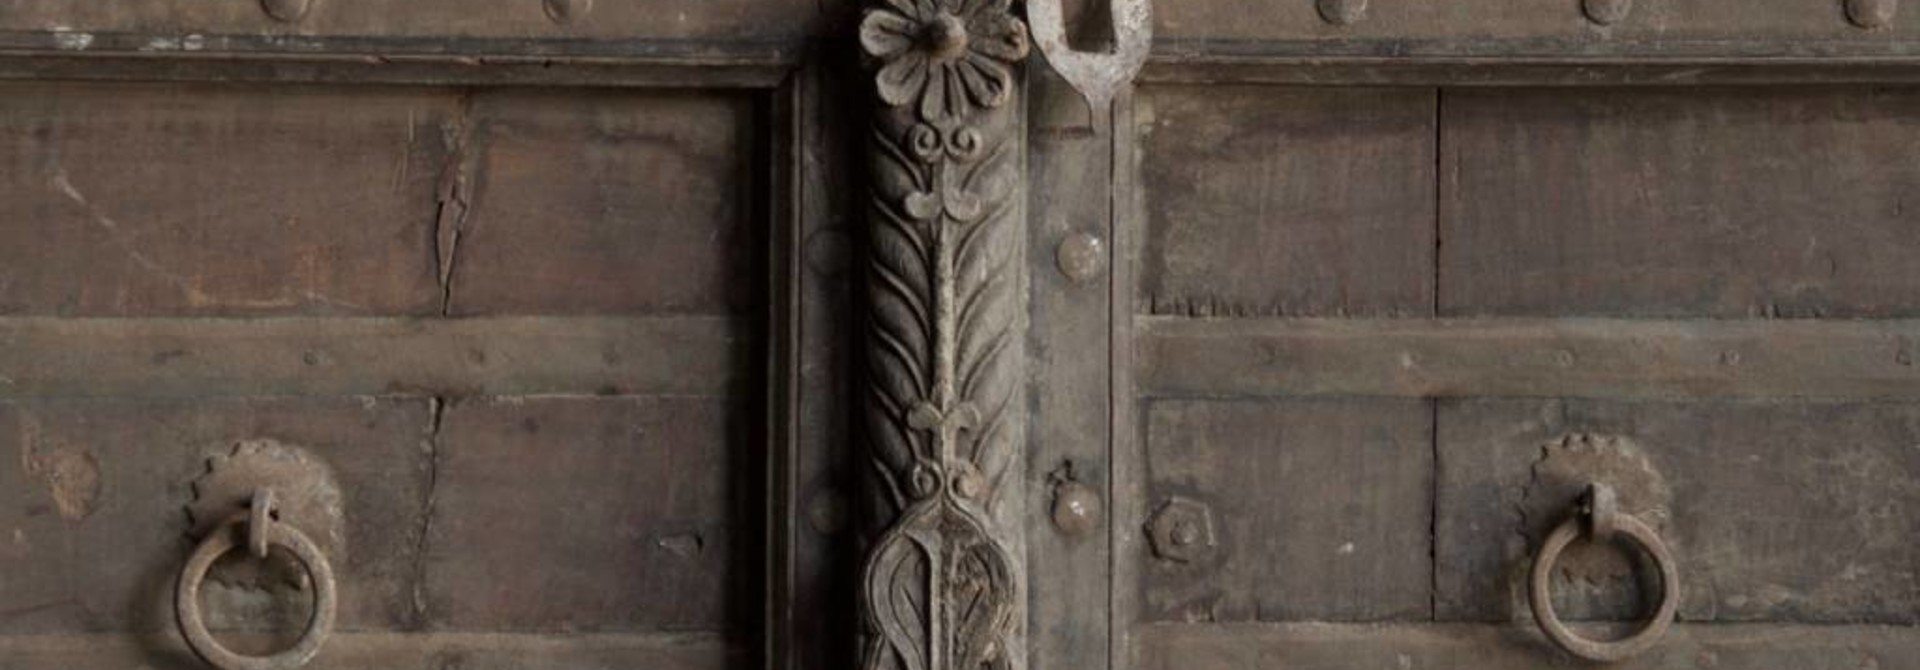 Old Indian doors